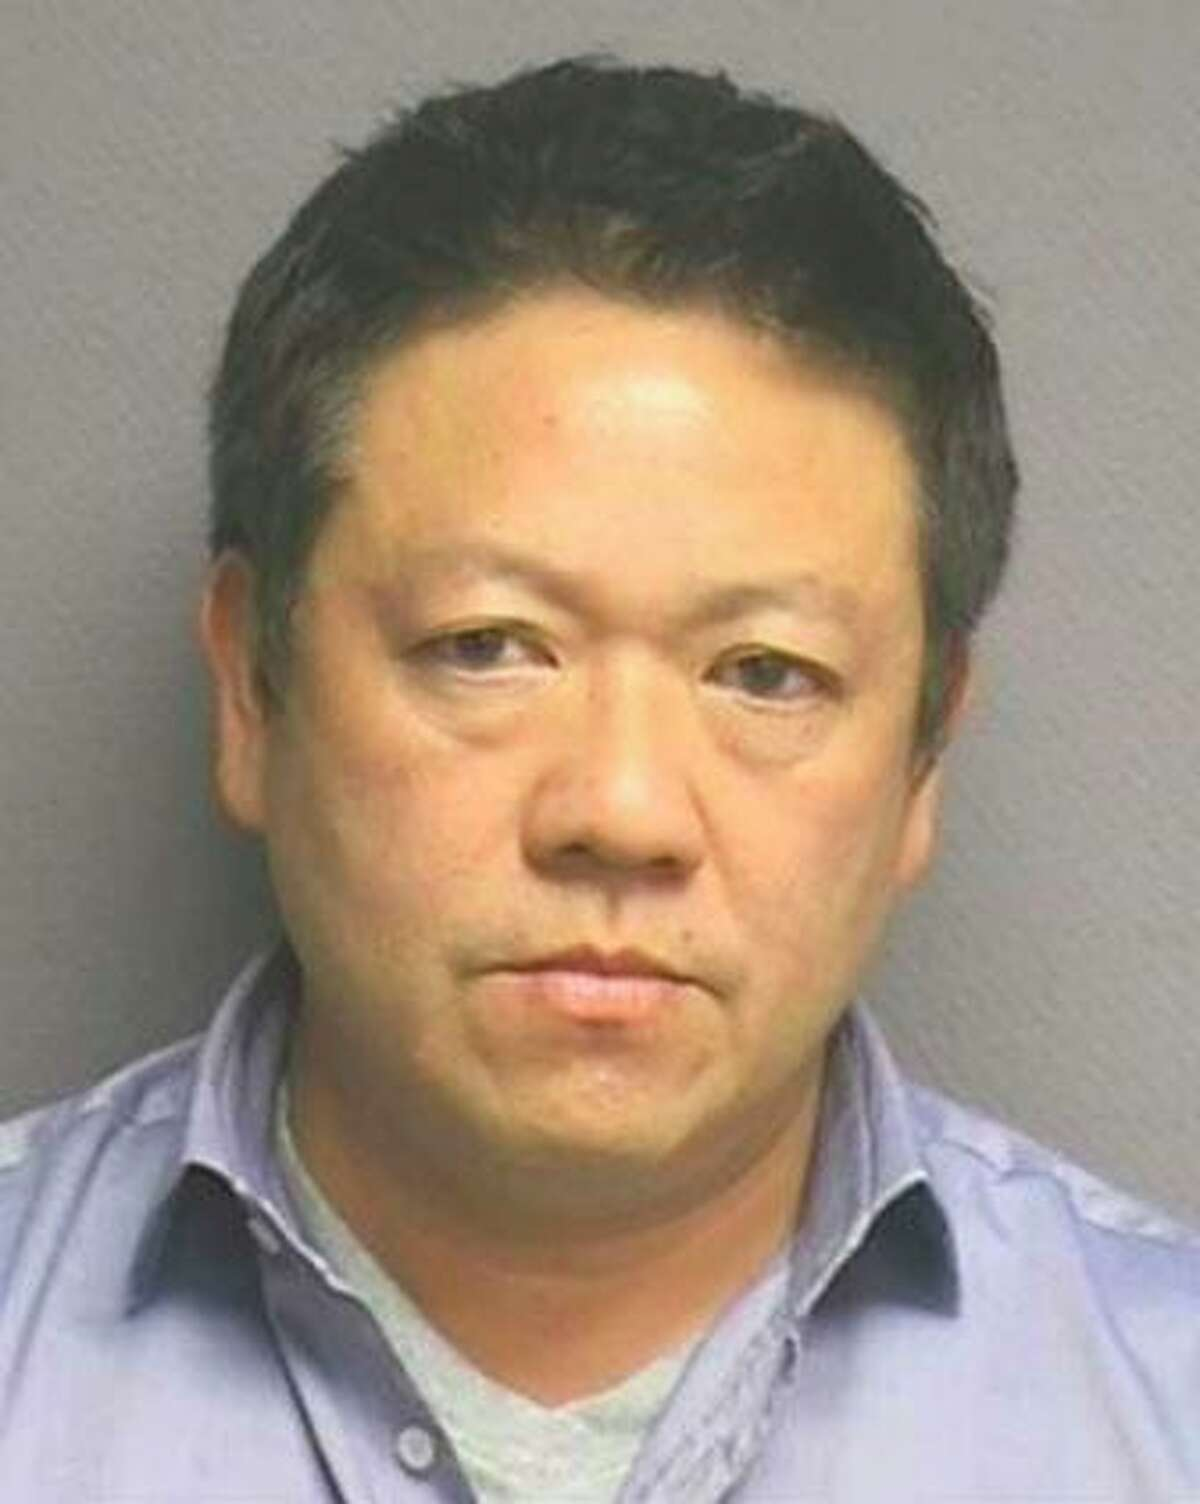 Tuan Dang, 49, was sentenced to two years deferred adjudication this week to delivery/offer to deliver dangerous drugs. He was arrested and charged in 2016 after a mass overdose in Hermann Park in which first responders had to take 16 people to the hospital after they used synthetic cannabinoids.